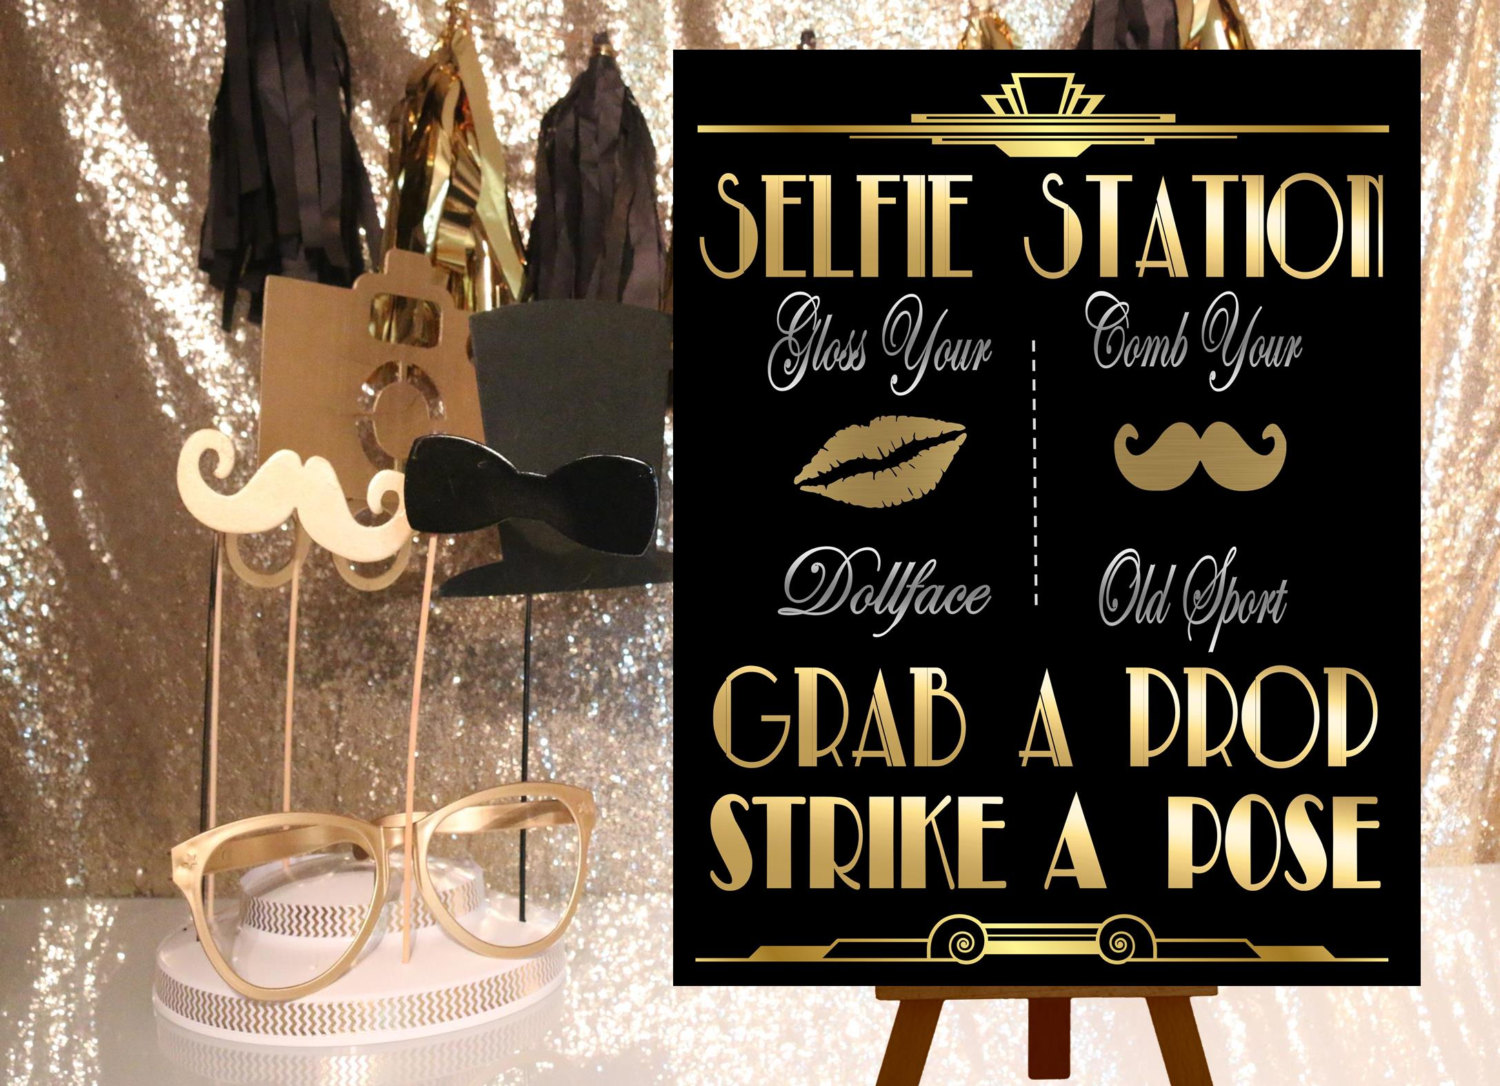 Decor Photobooth Great Gatsby Printables Selfie Station Photobooth Sign Gatsby Party Decoration Roaring 20s Art Deco Wedding Photobooth Sign Grab A Prop From Ink Me